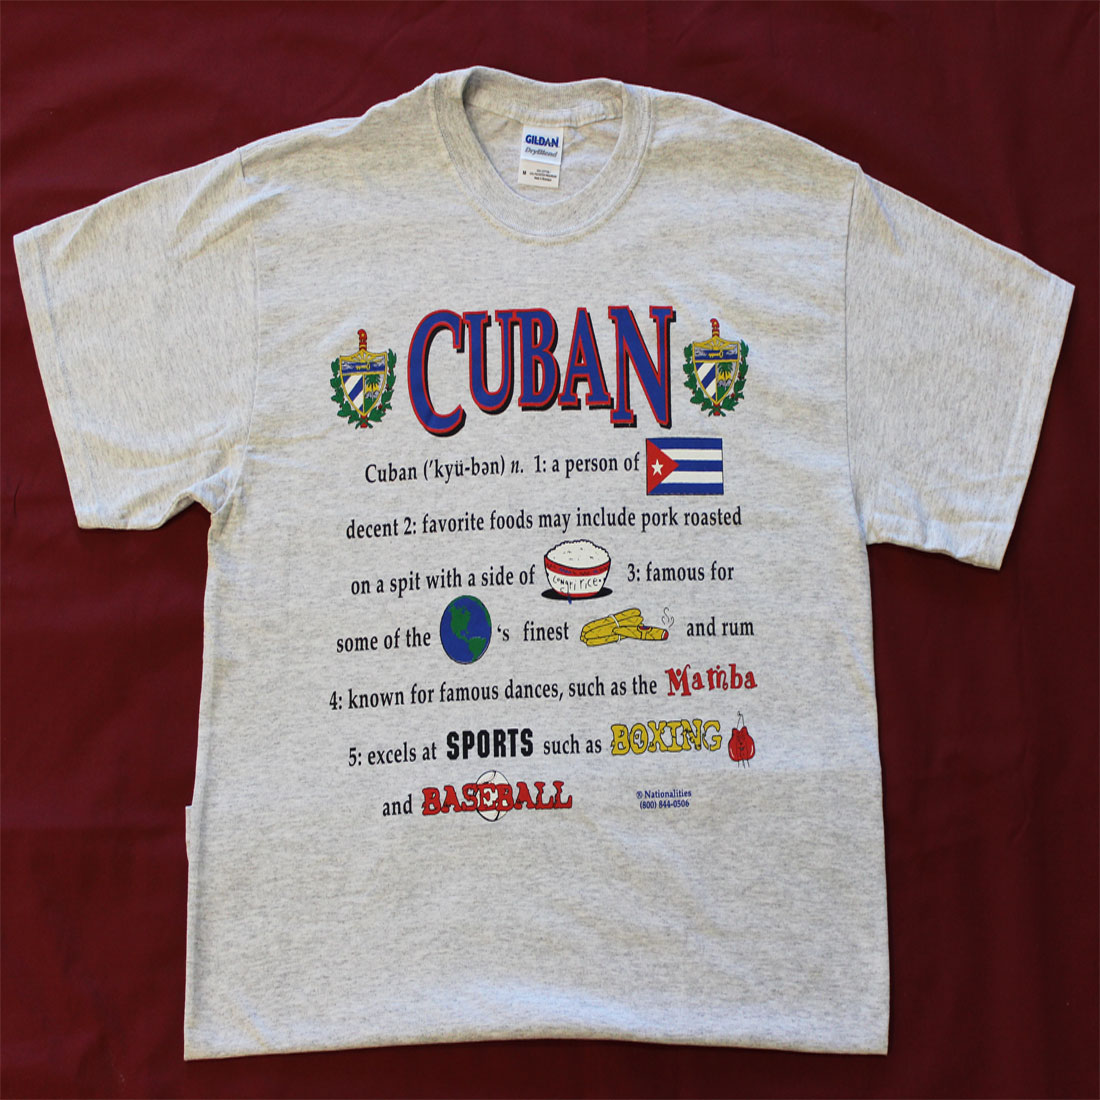 Buy Definition: Buy Cuba Definition T-Shirt